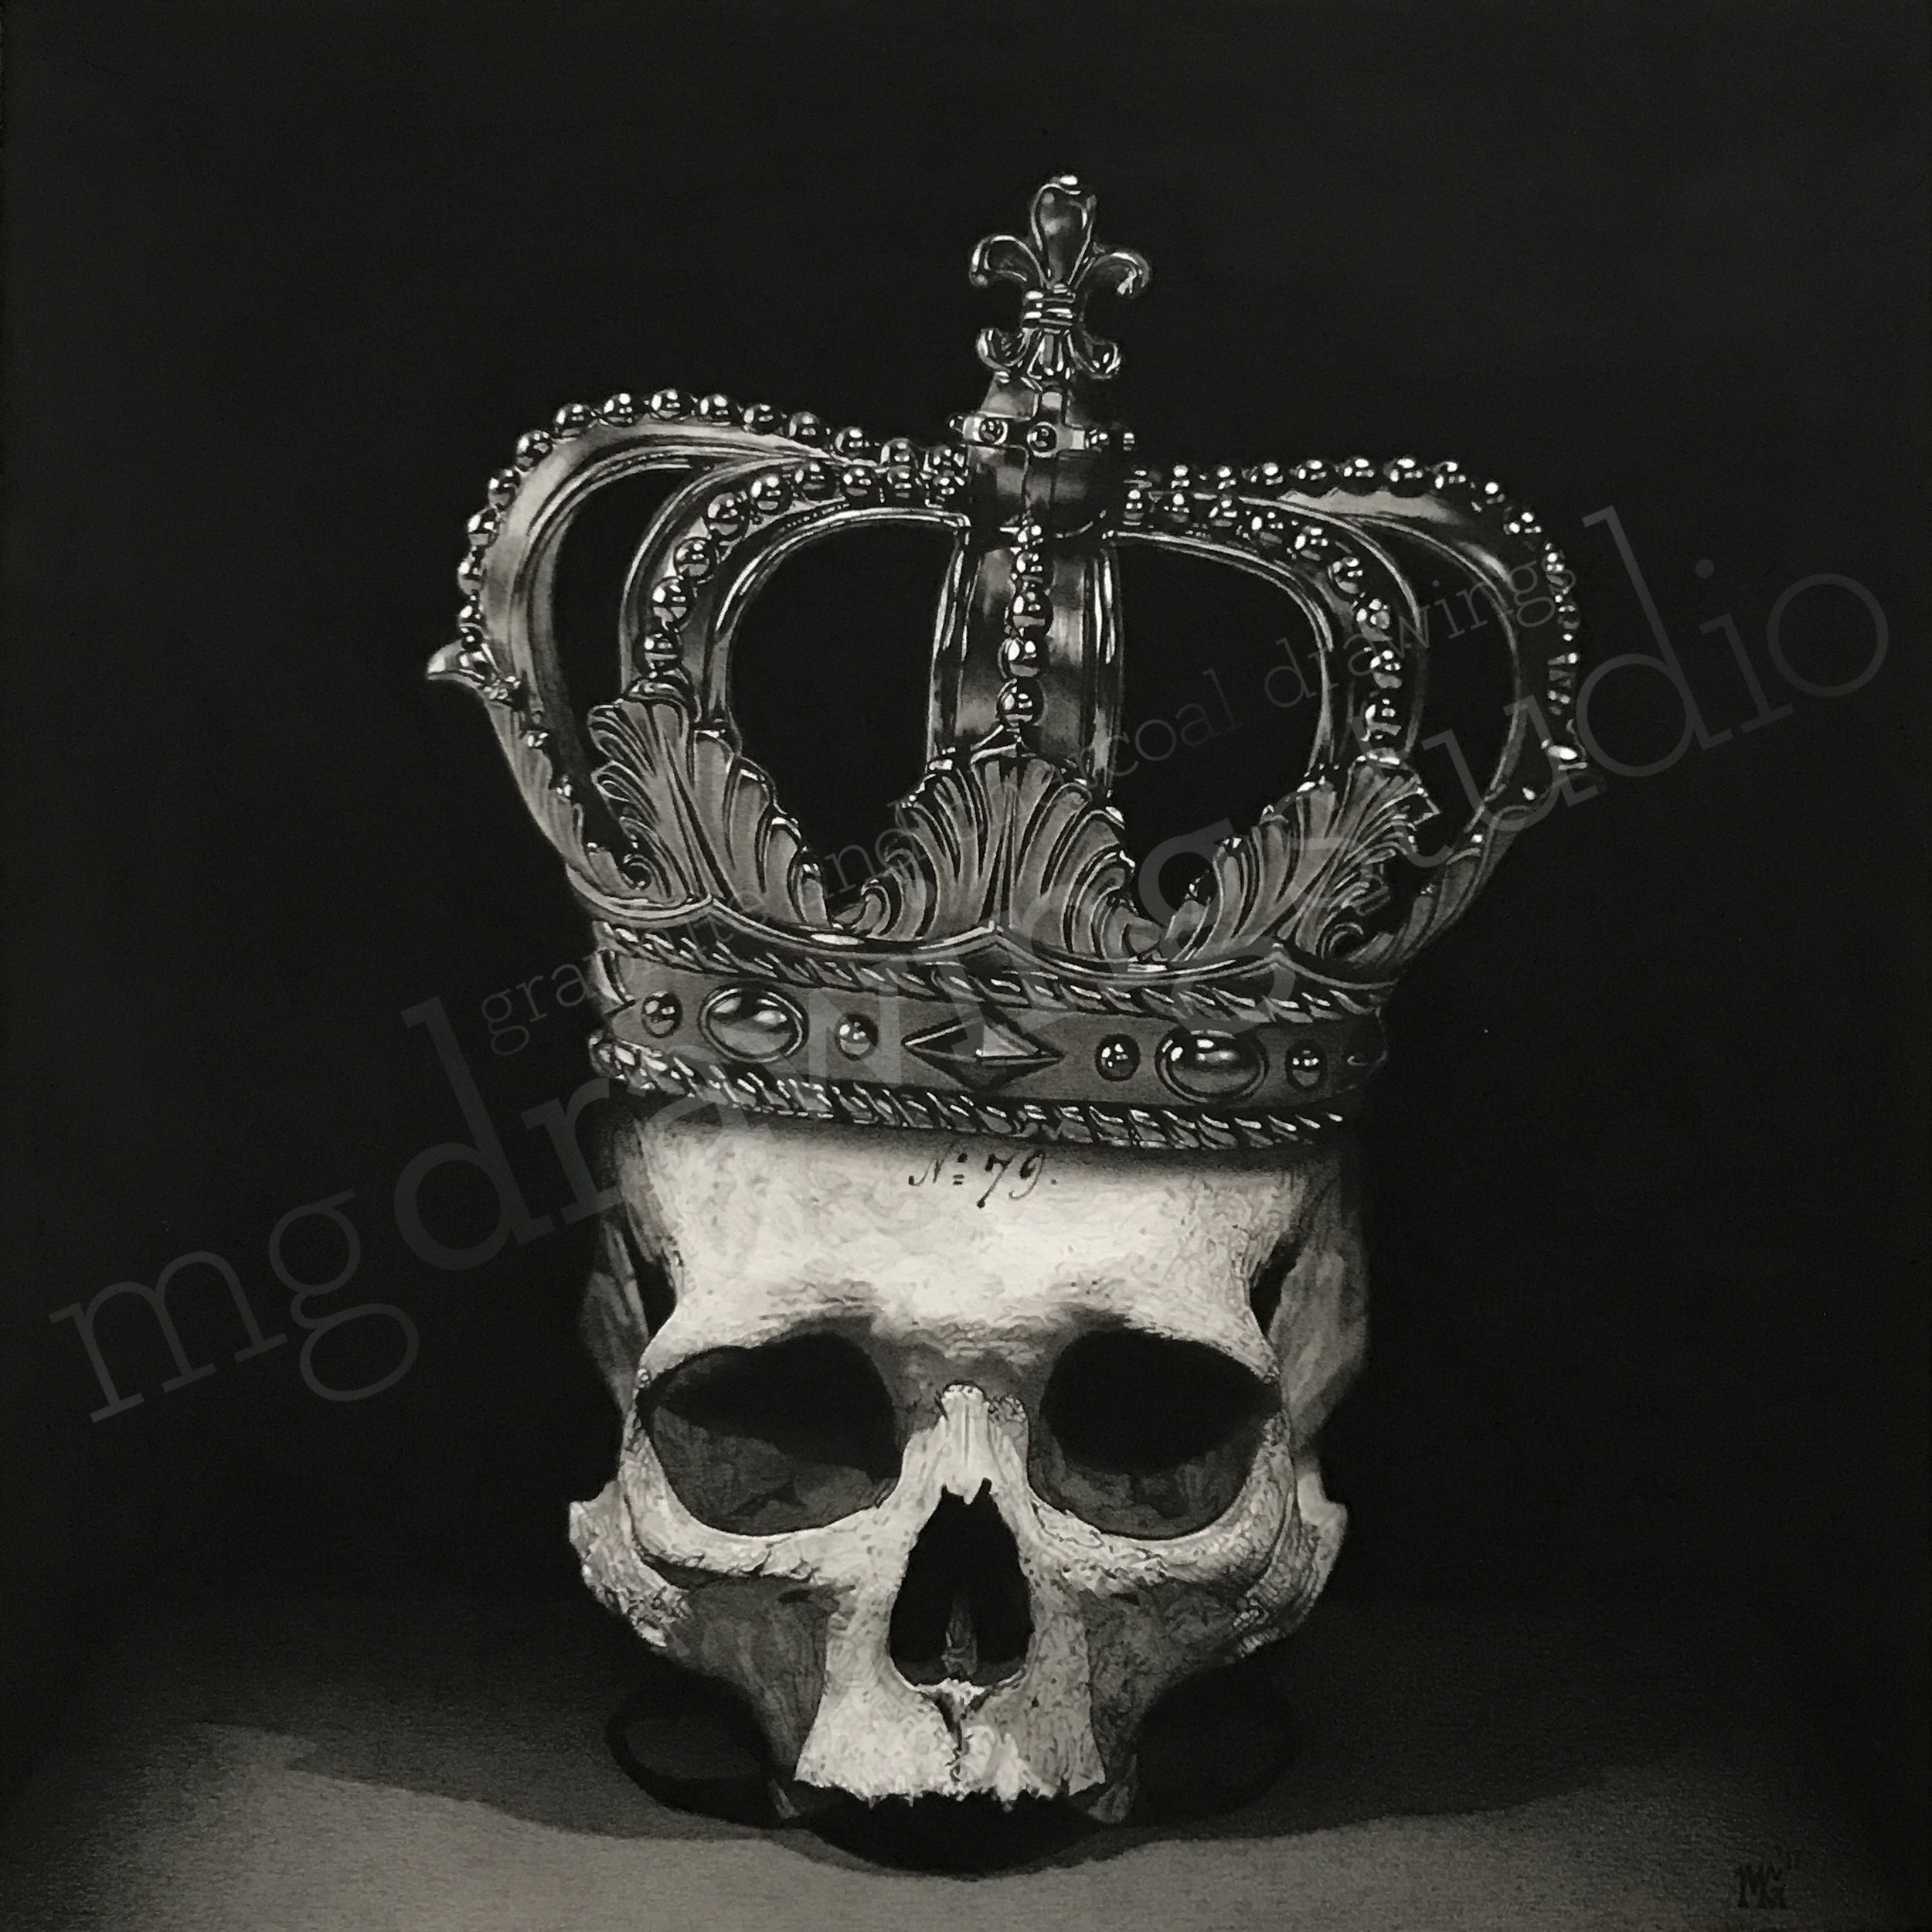 HeavyLiesTheCrown_mgdrawingstudio_5.jpg